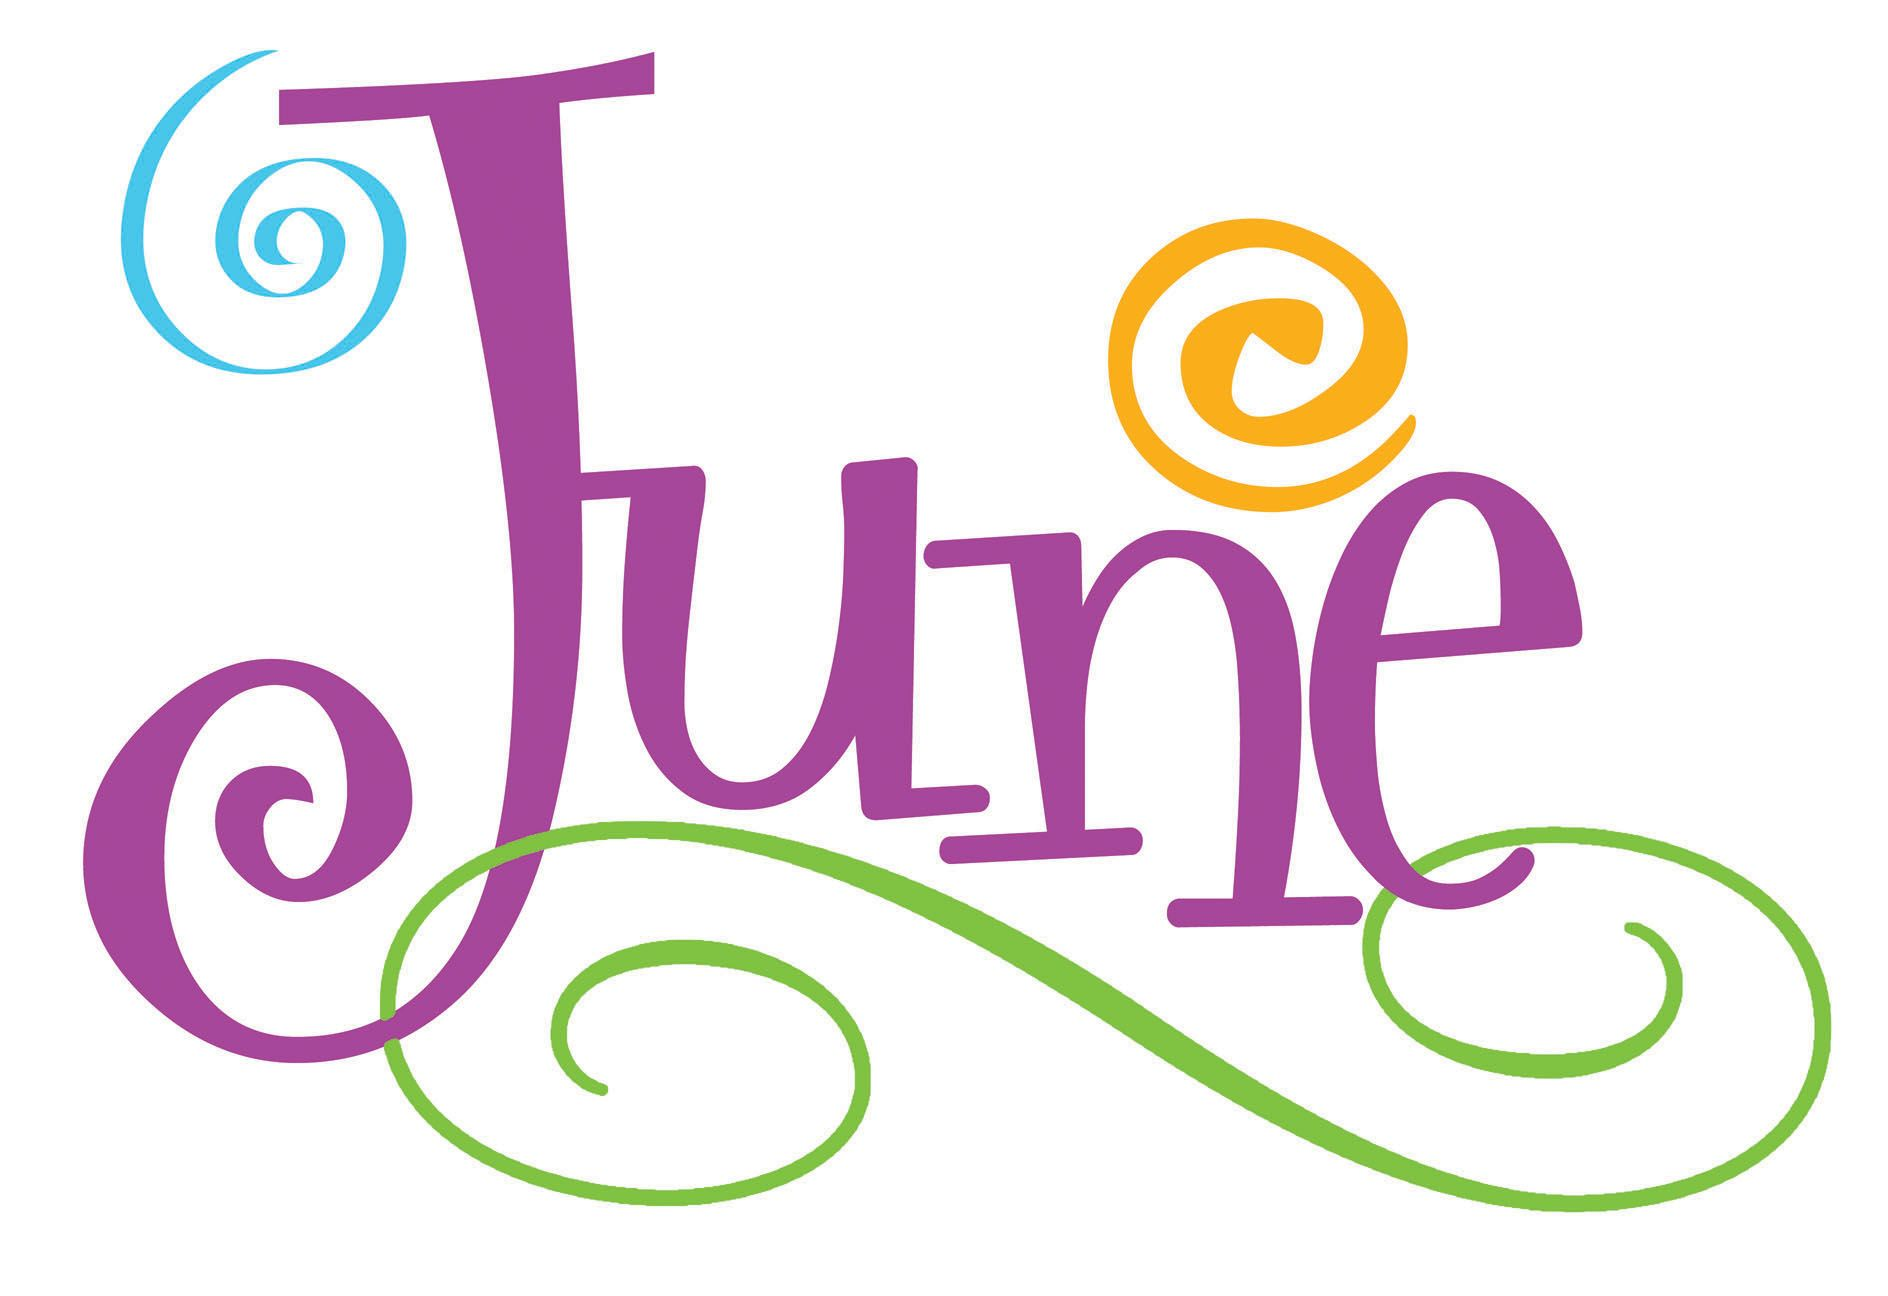 Collection of June clipart.